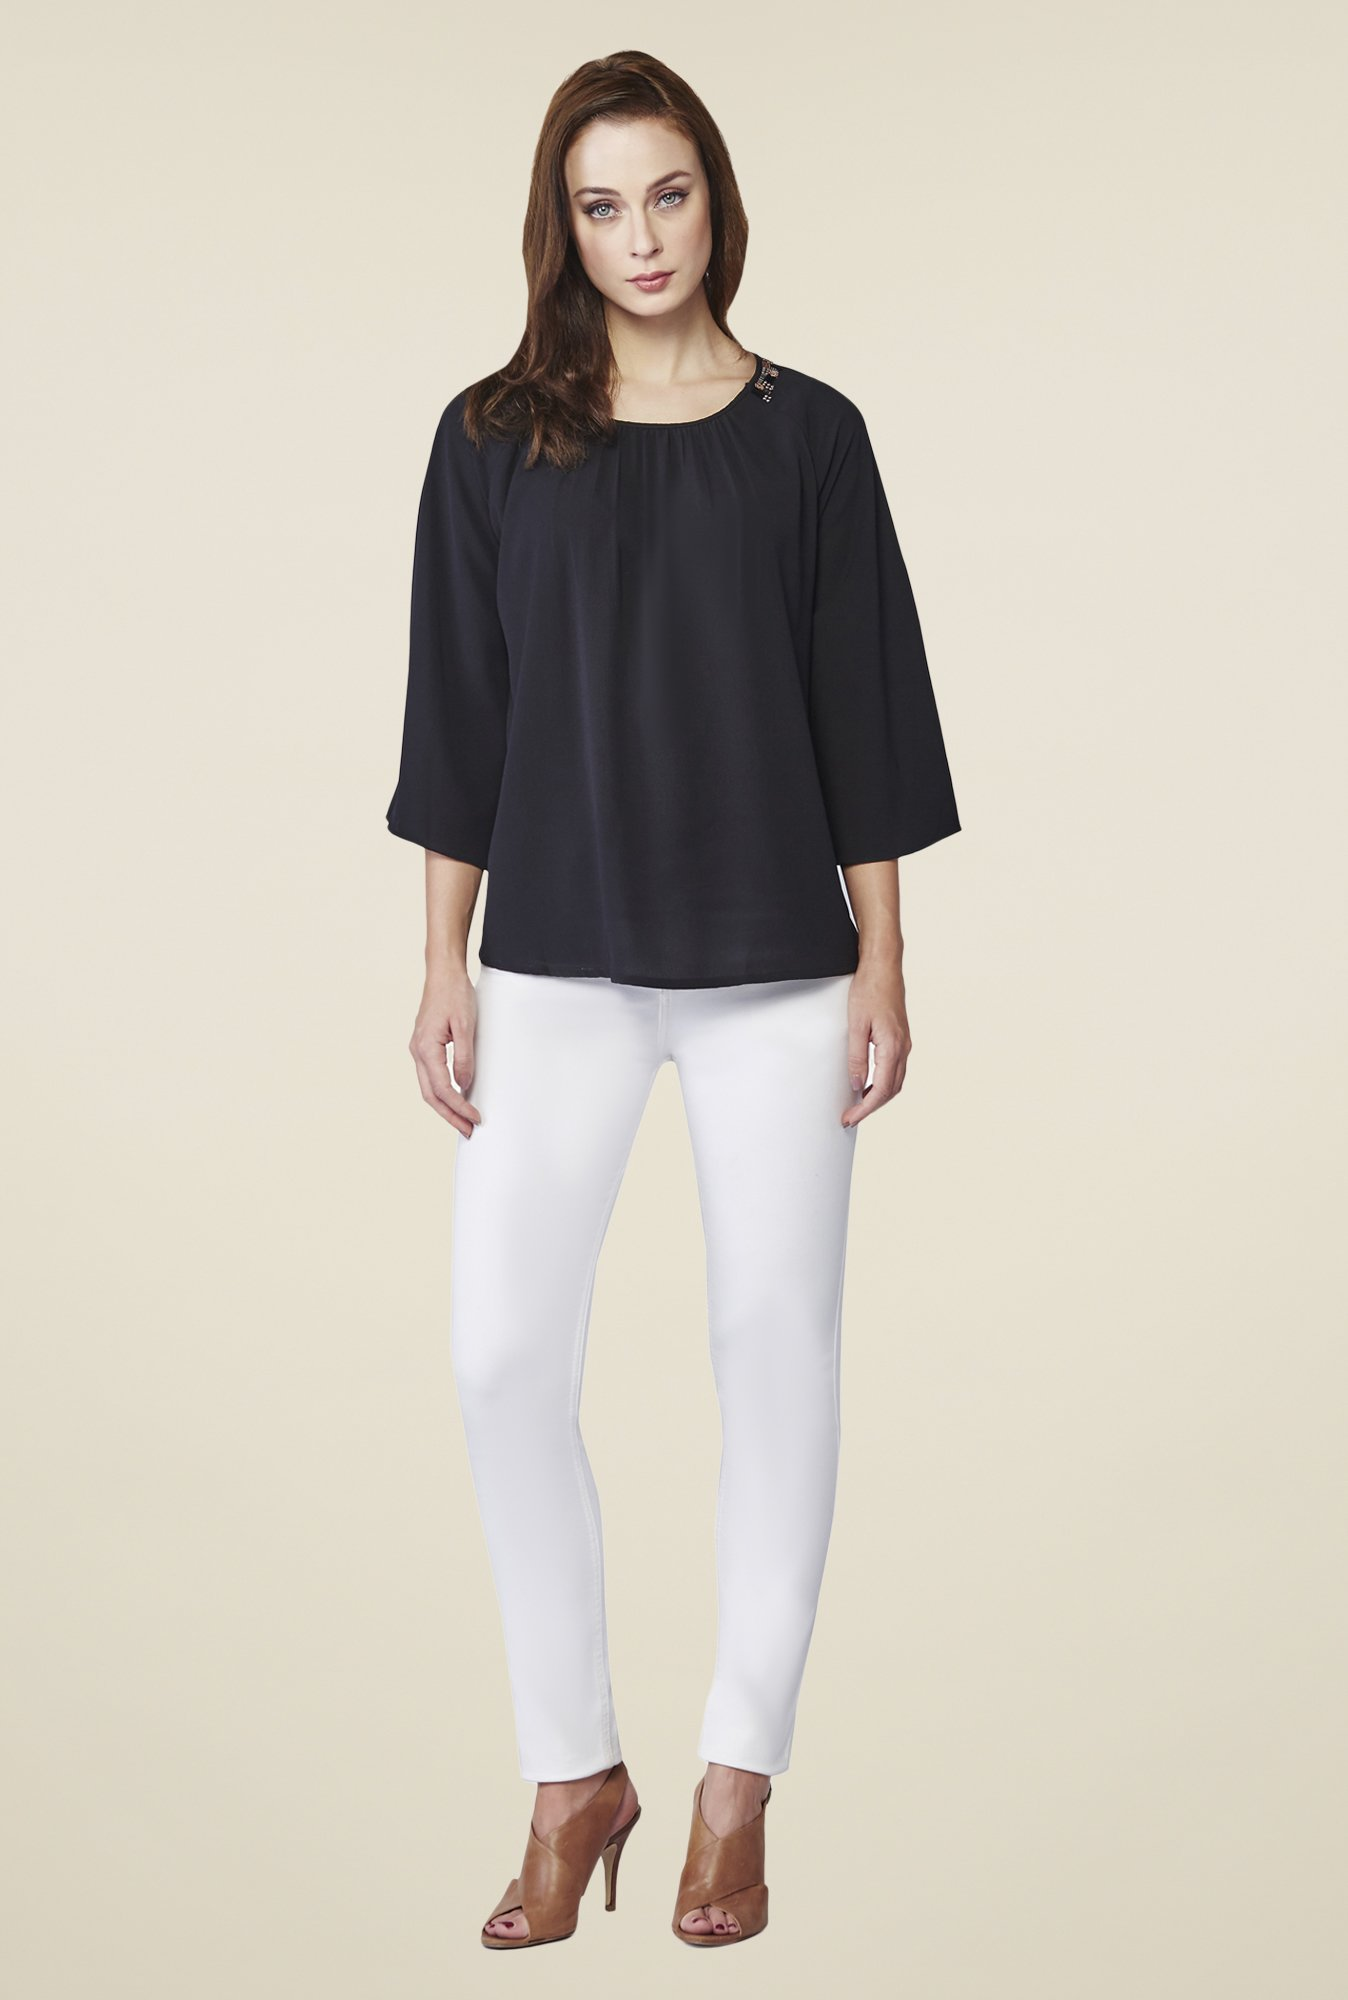 AND Black Reina Embellished Top